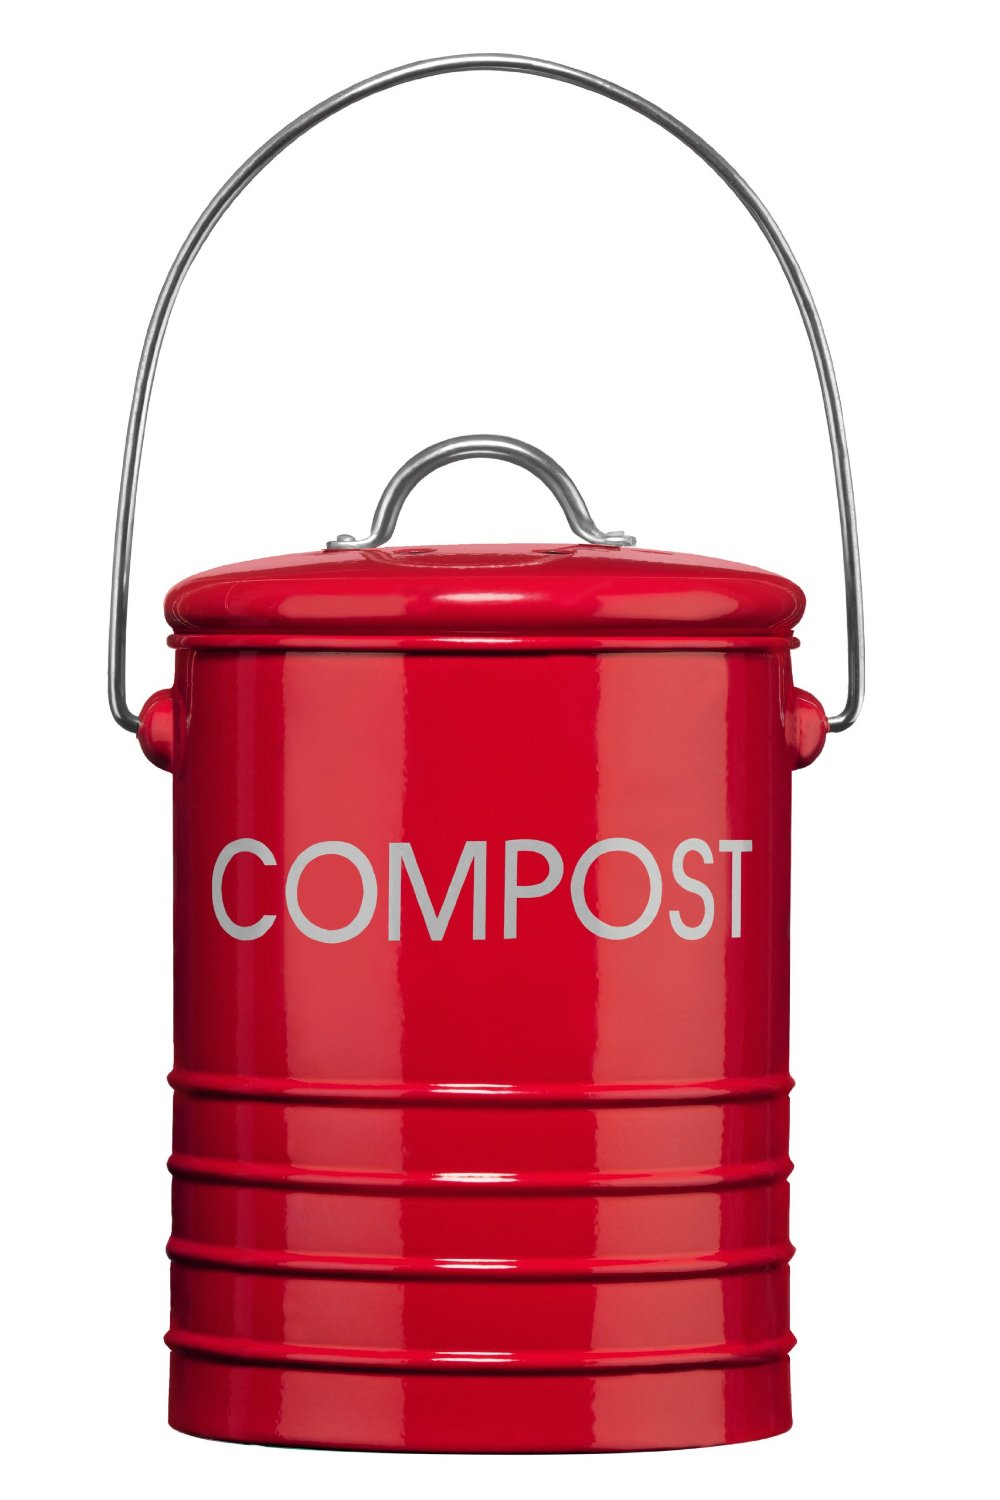 red galvanised metal kitchen small compost bin caddy food recycle